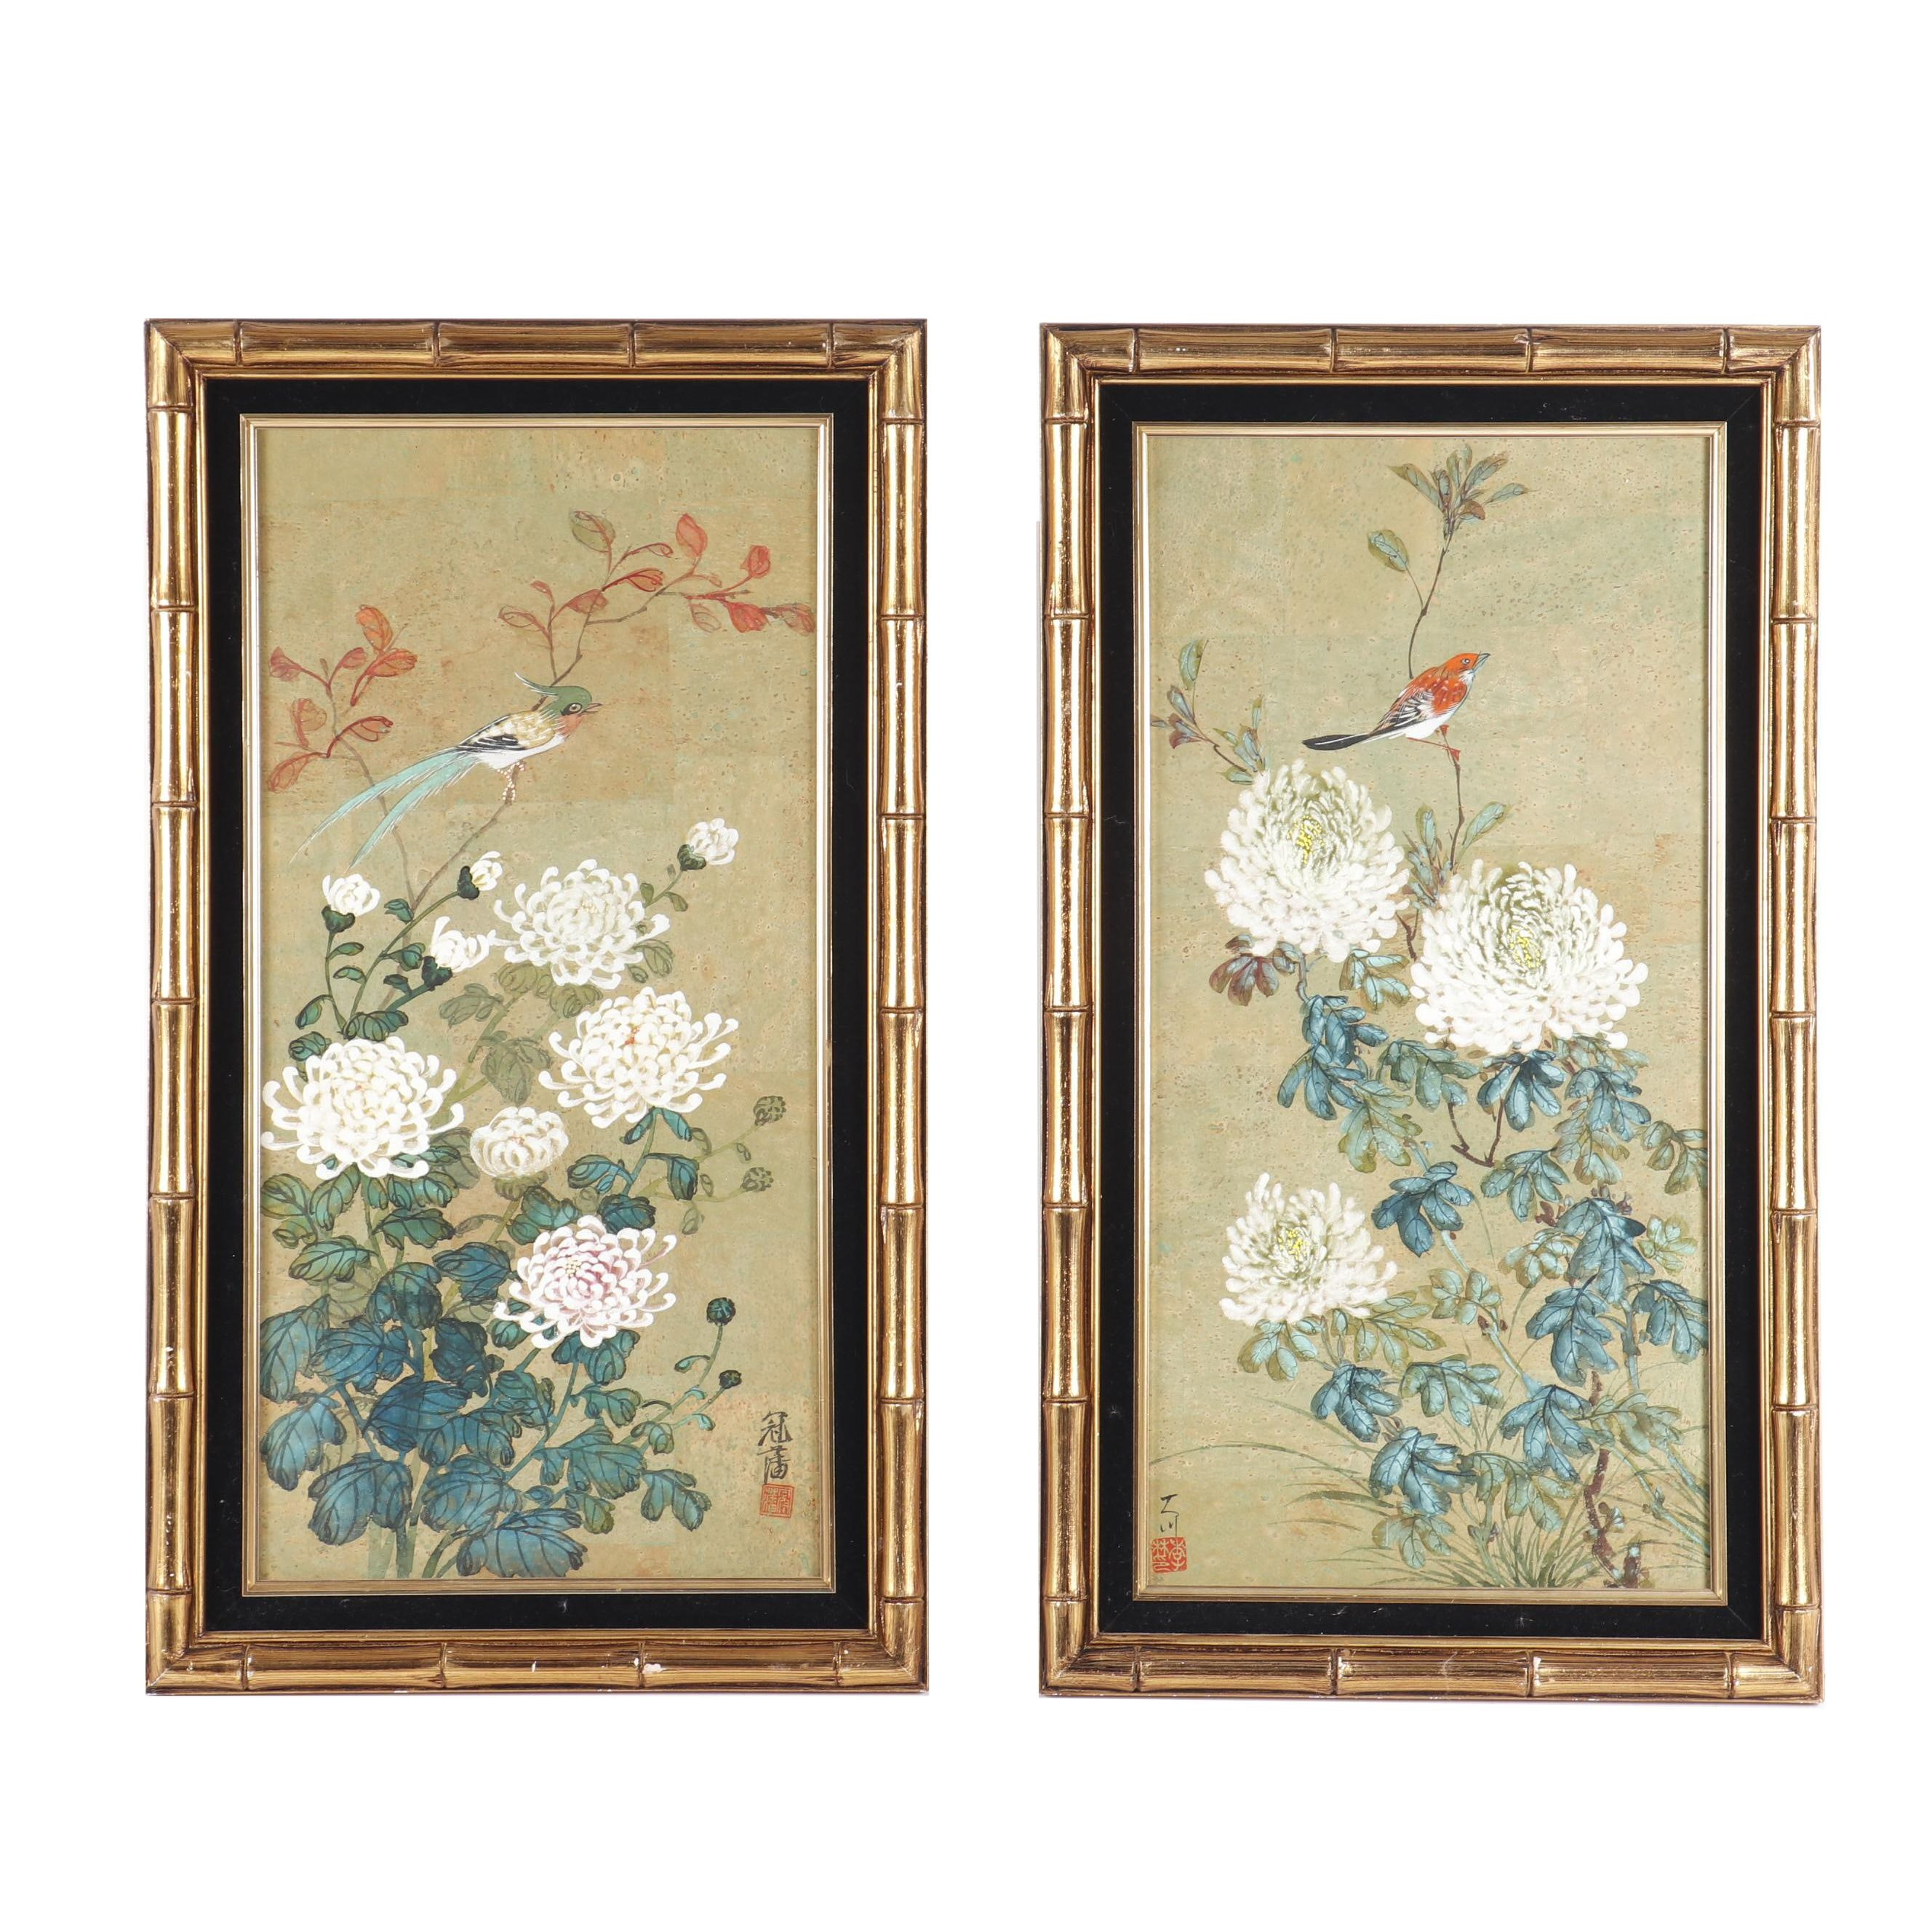 Chinese Flower and Bird Casein Paintings on Cork